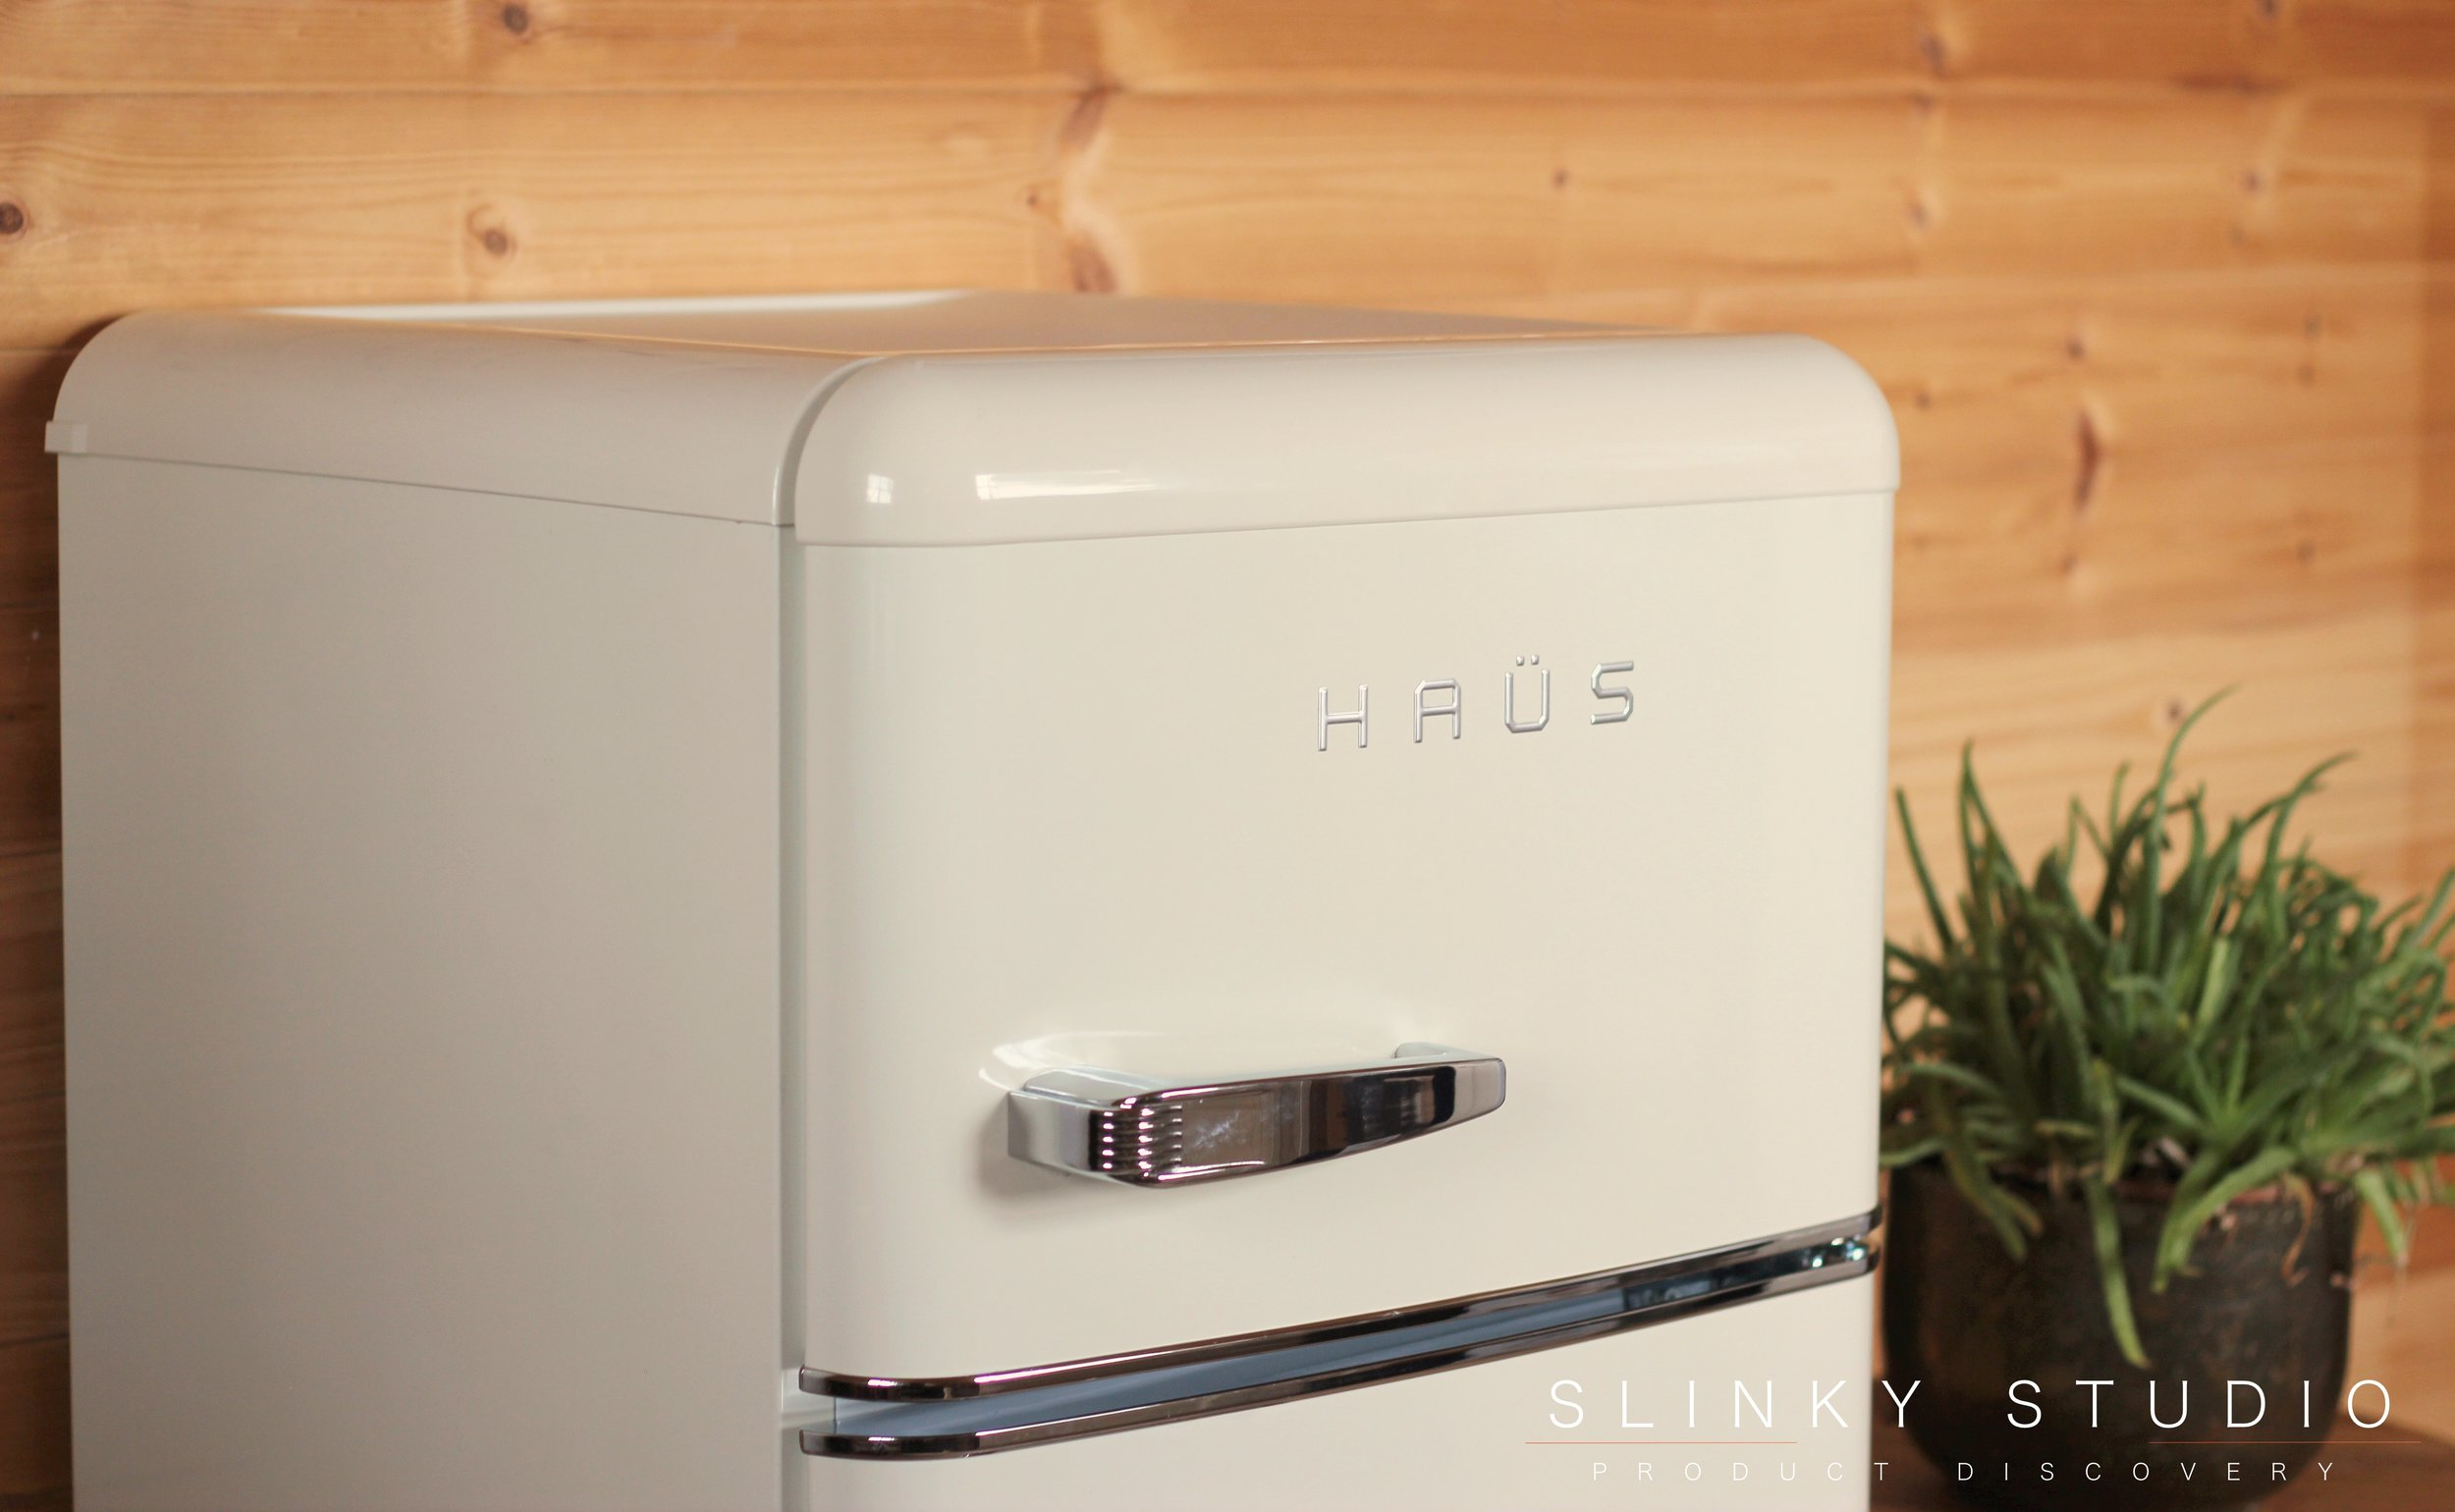 Bauer Haüs Retro Fridge Freezer Side View.jpg